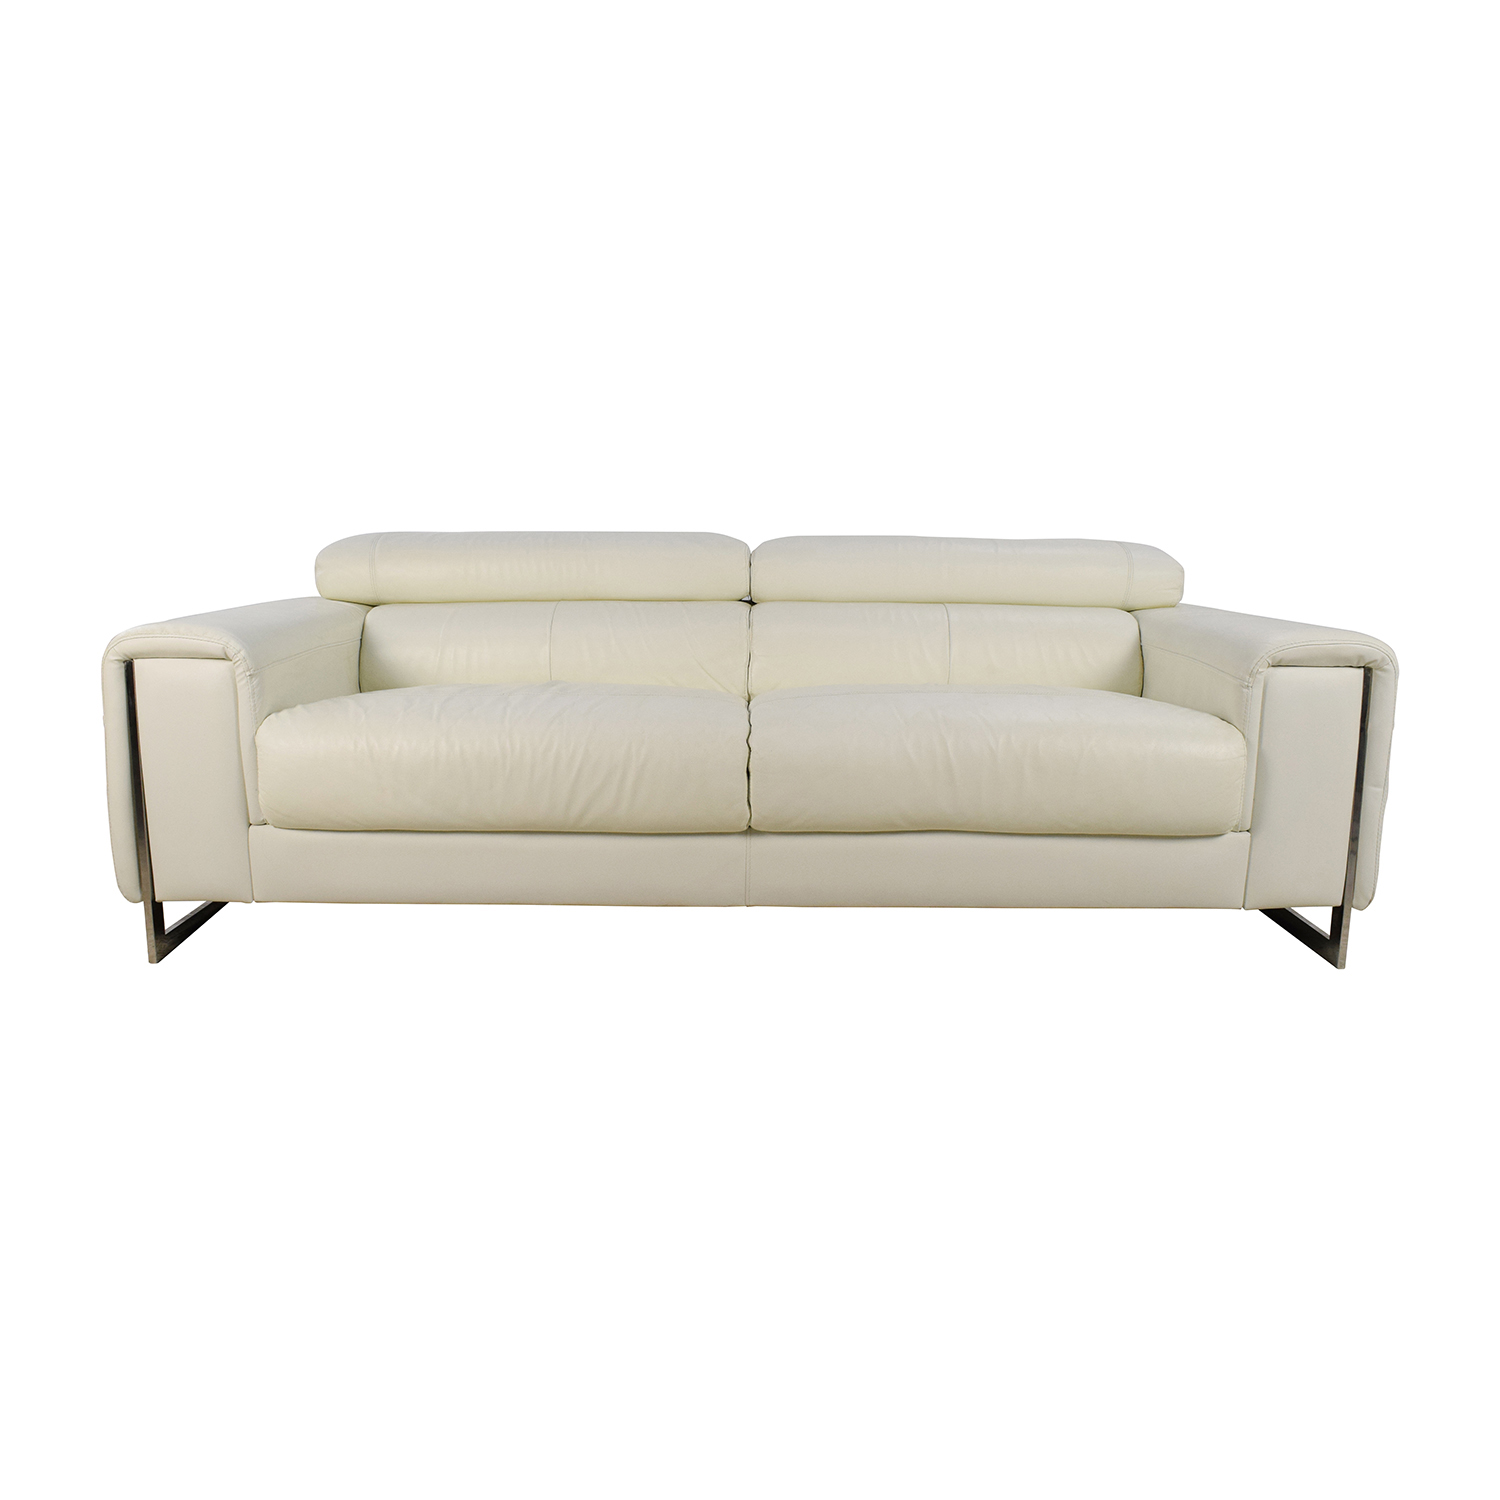 J U0026 M Soho White Leather Sofa ...